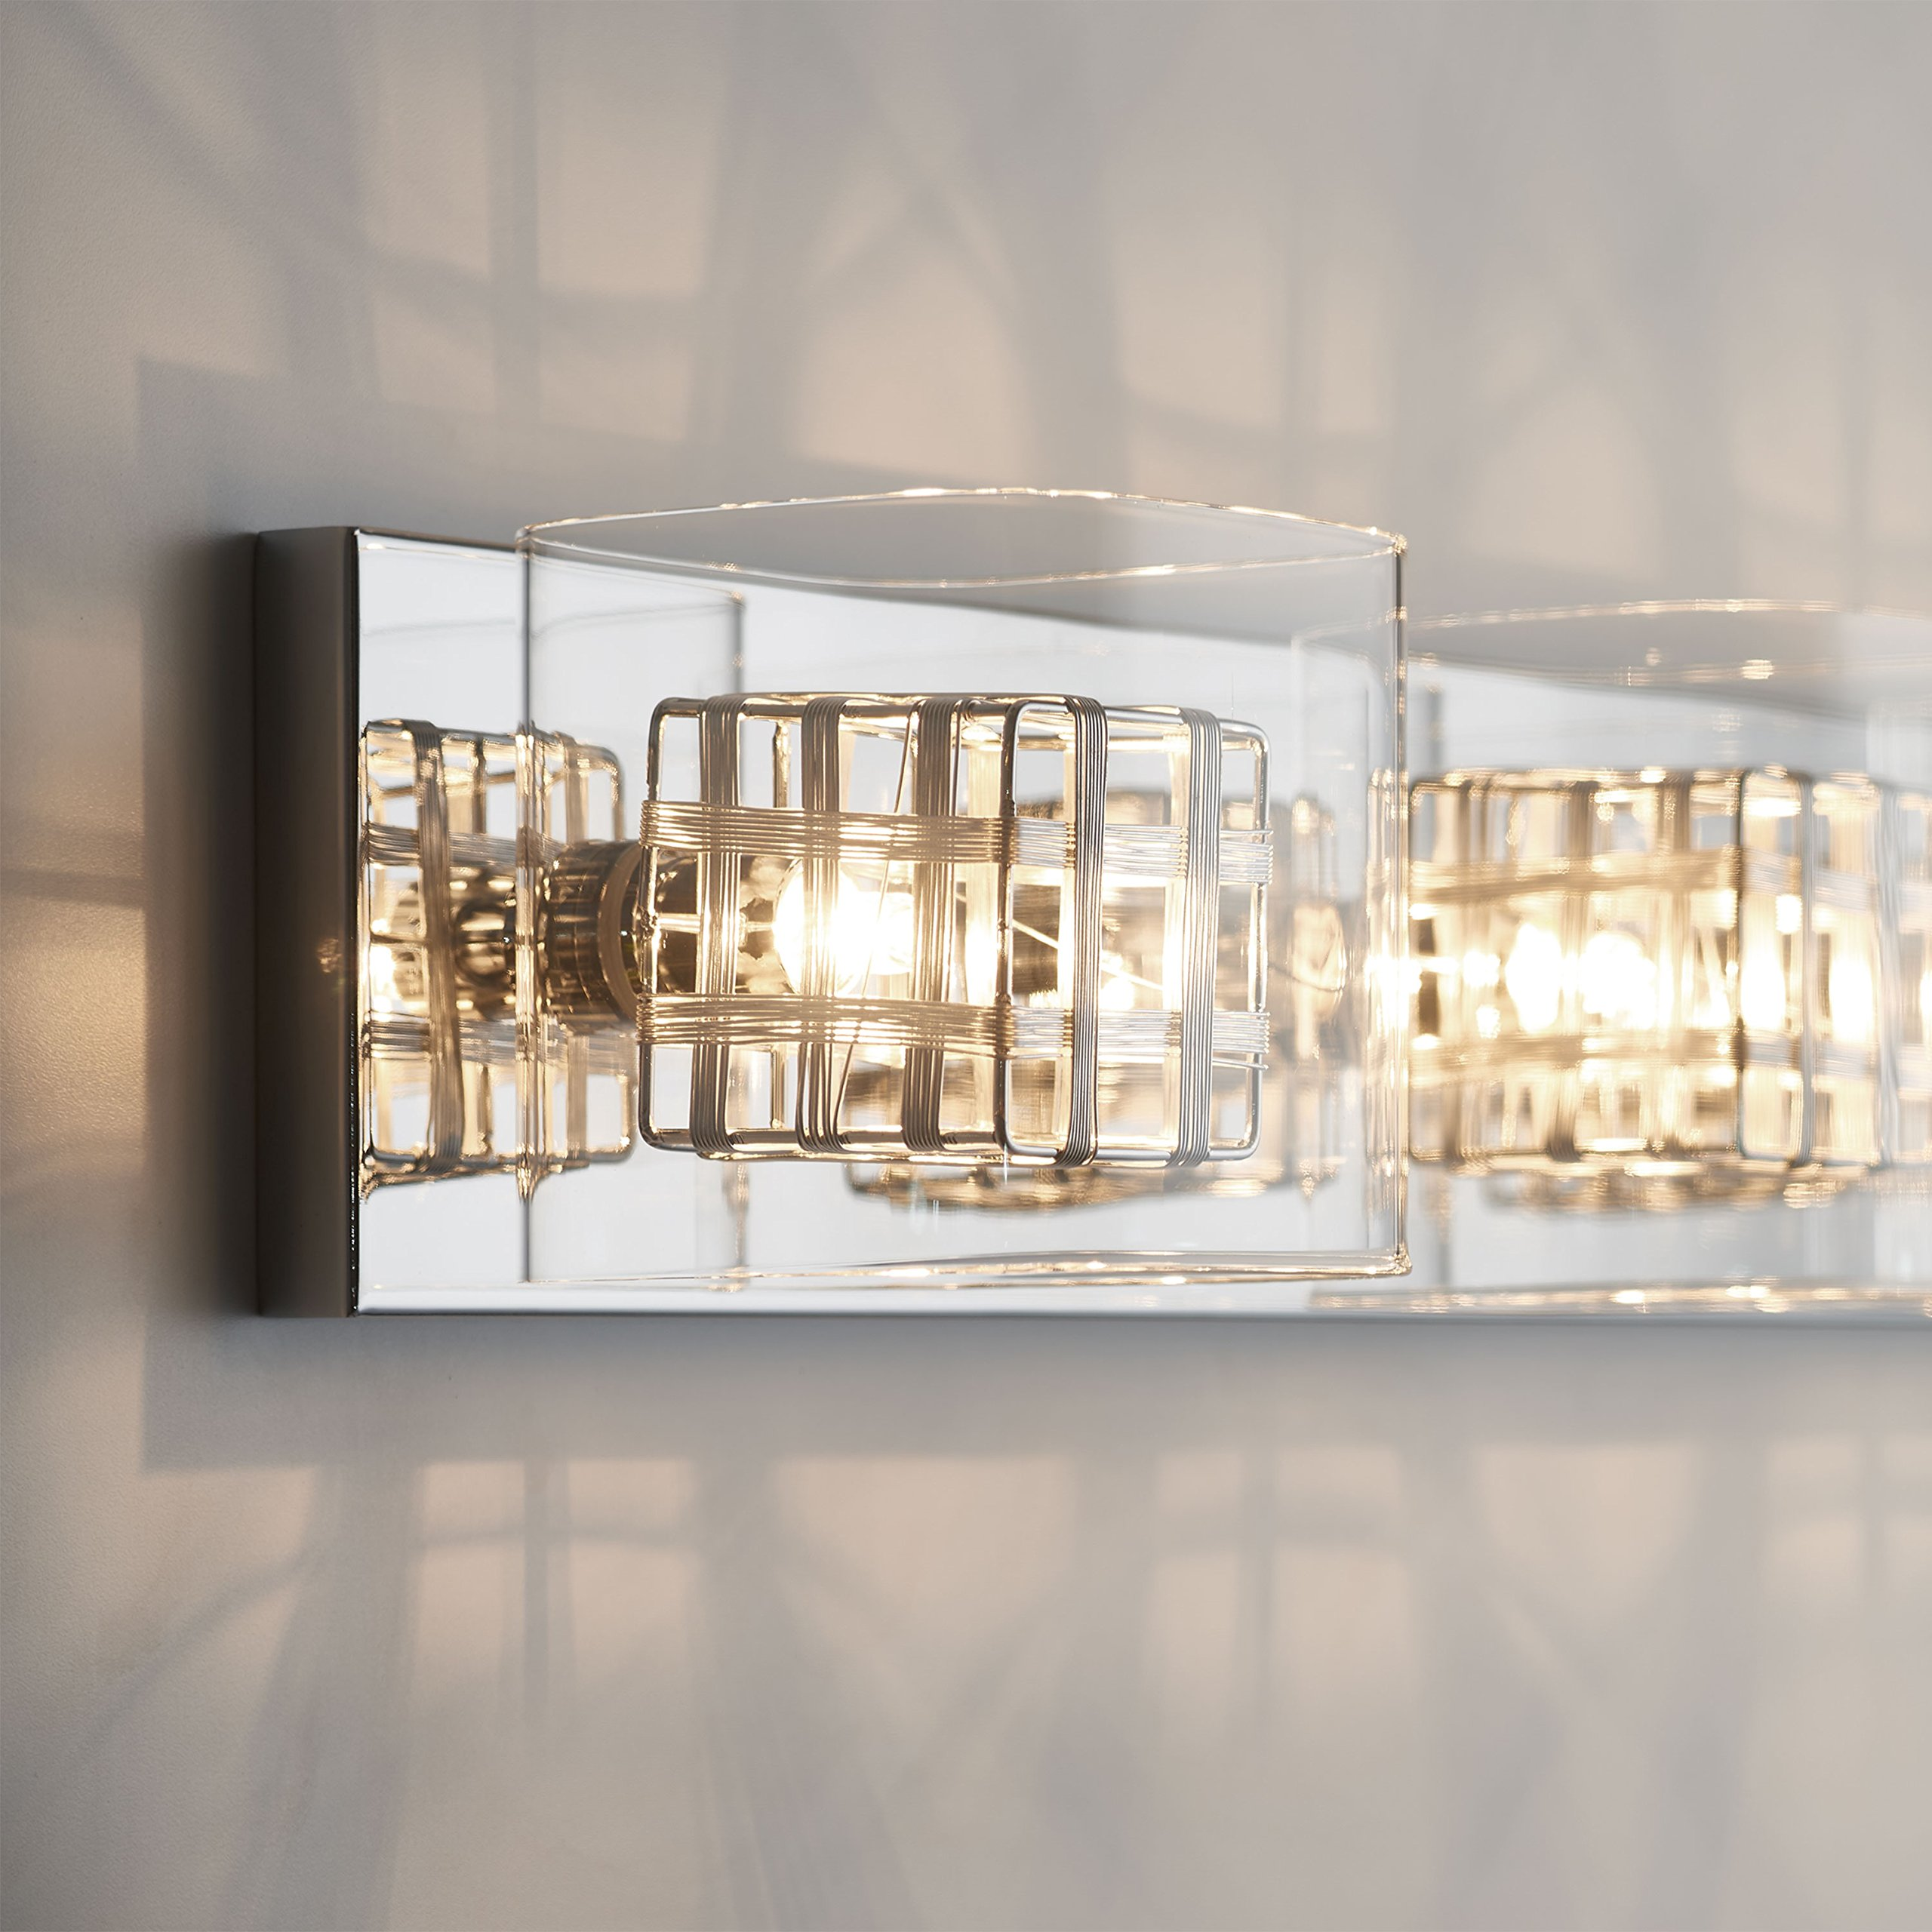 Artika VAN4M-HD1 Metropolitan 4-Light Bulbs, 30-inches Wall Fixture with Dimmable Light and a Chrome Finish by Artika (Image #4)